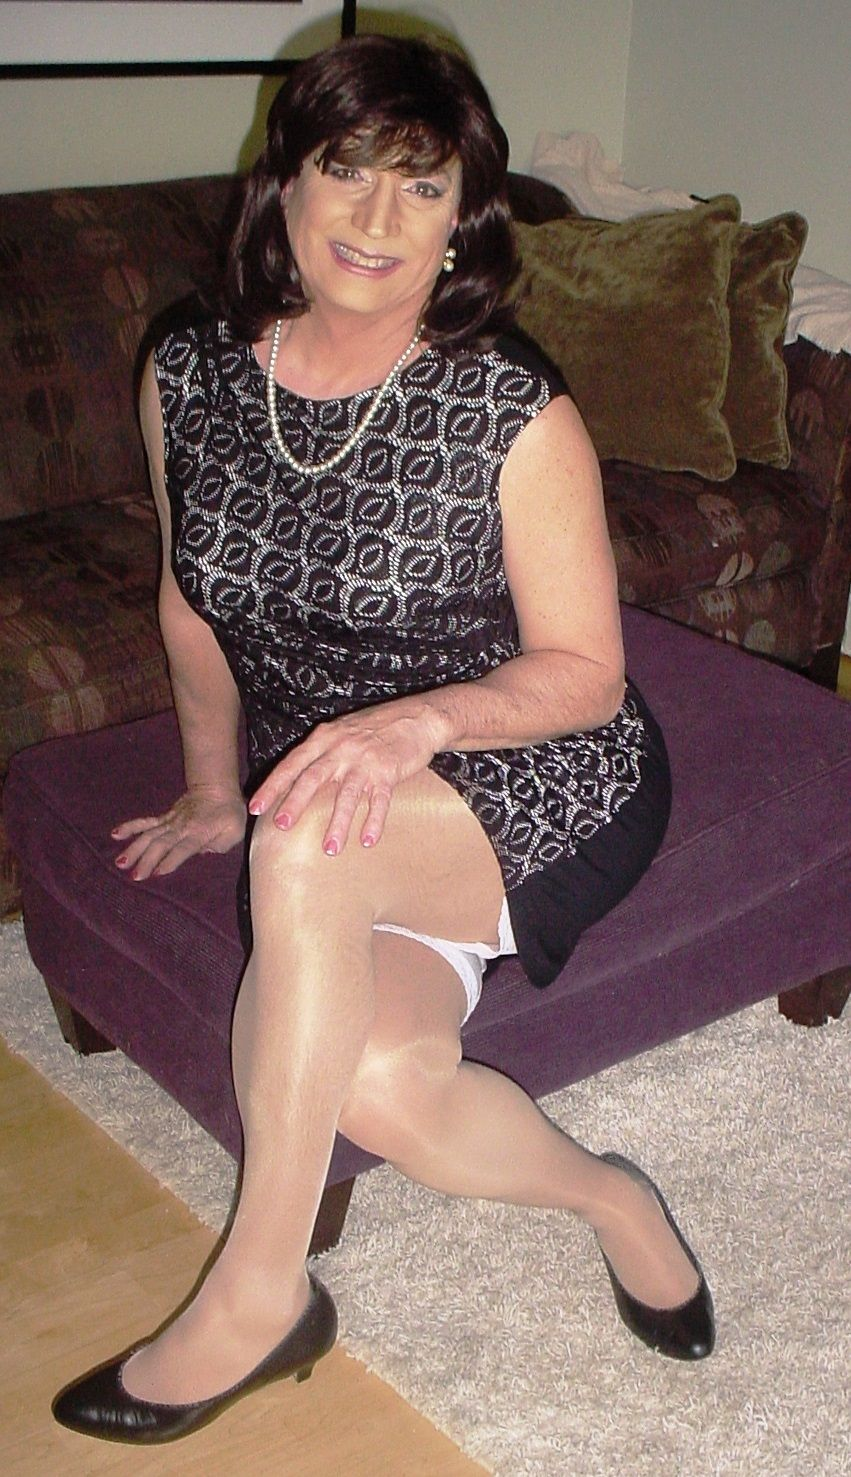 Pictures of sissy crossdressers